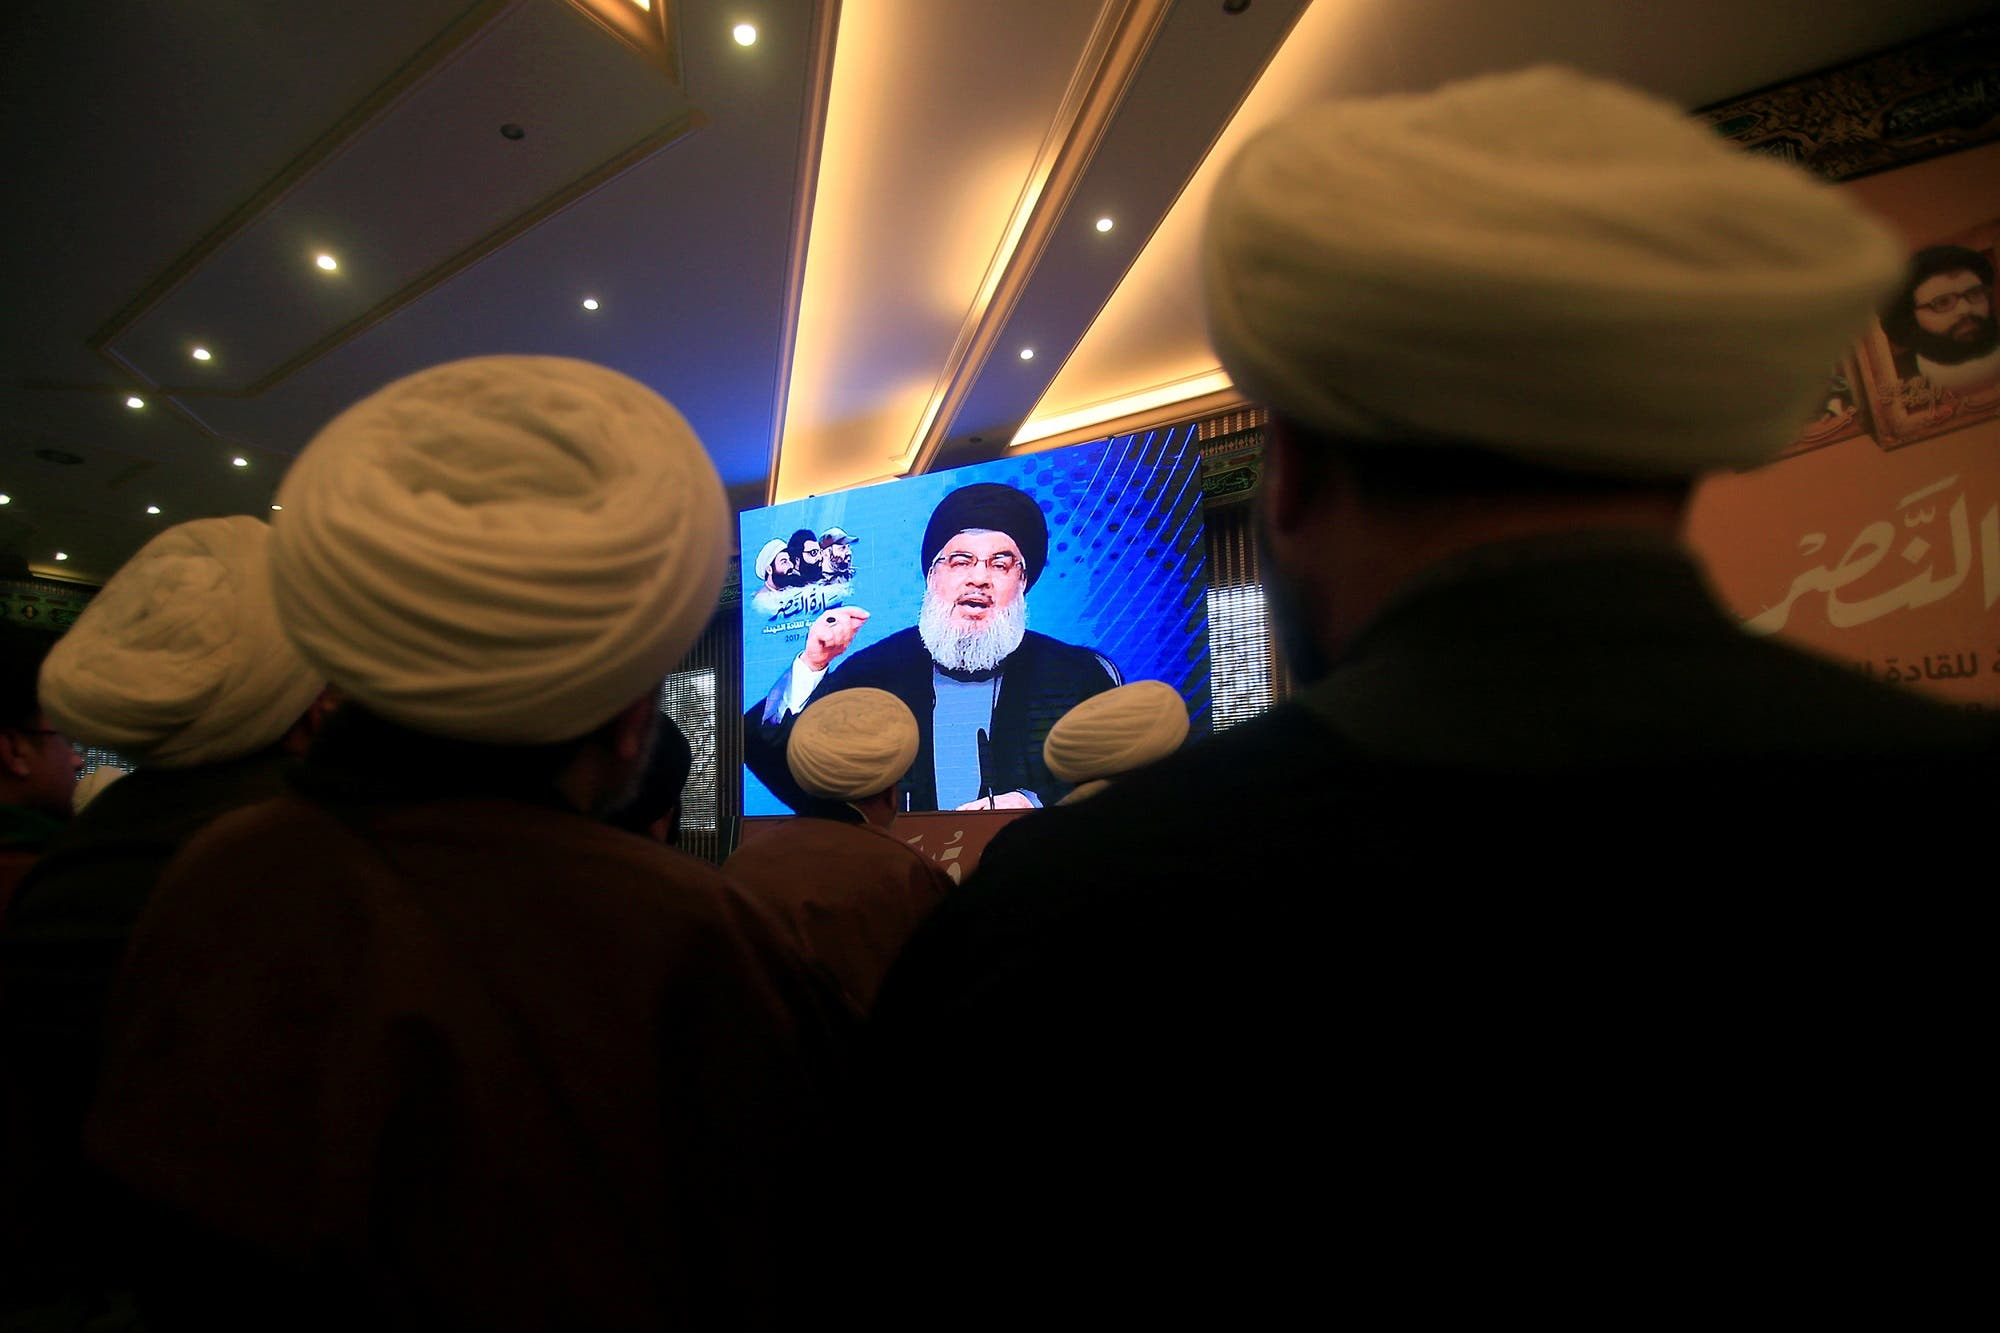 Hassan Nasrallah addresses his supporters through a screen during a rally in Jebshit village, southern Lebanon, on February 16, 2017. (Reuters)